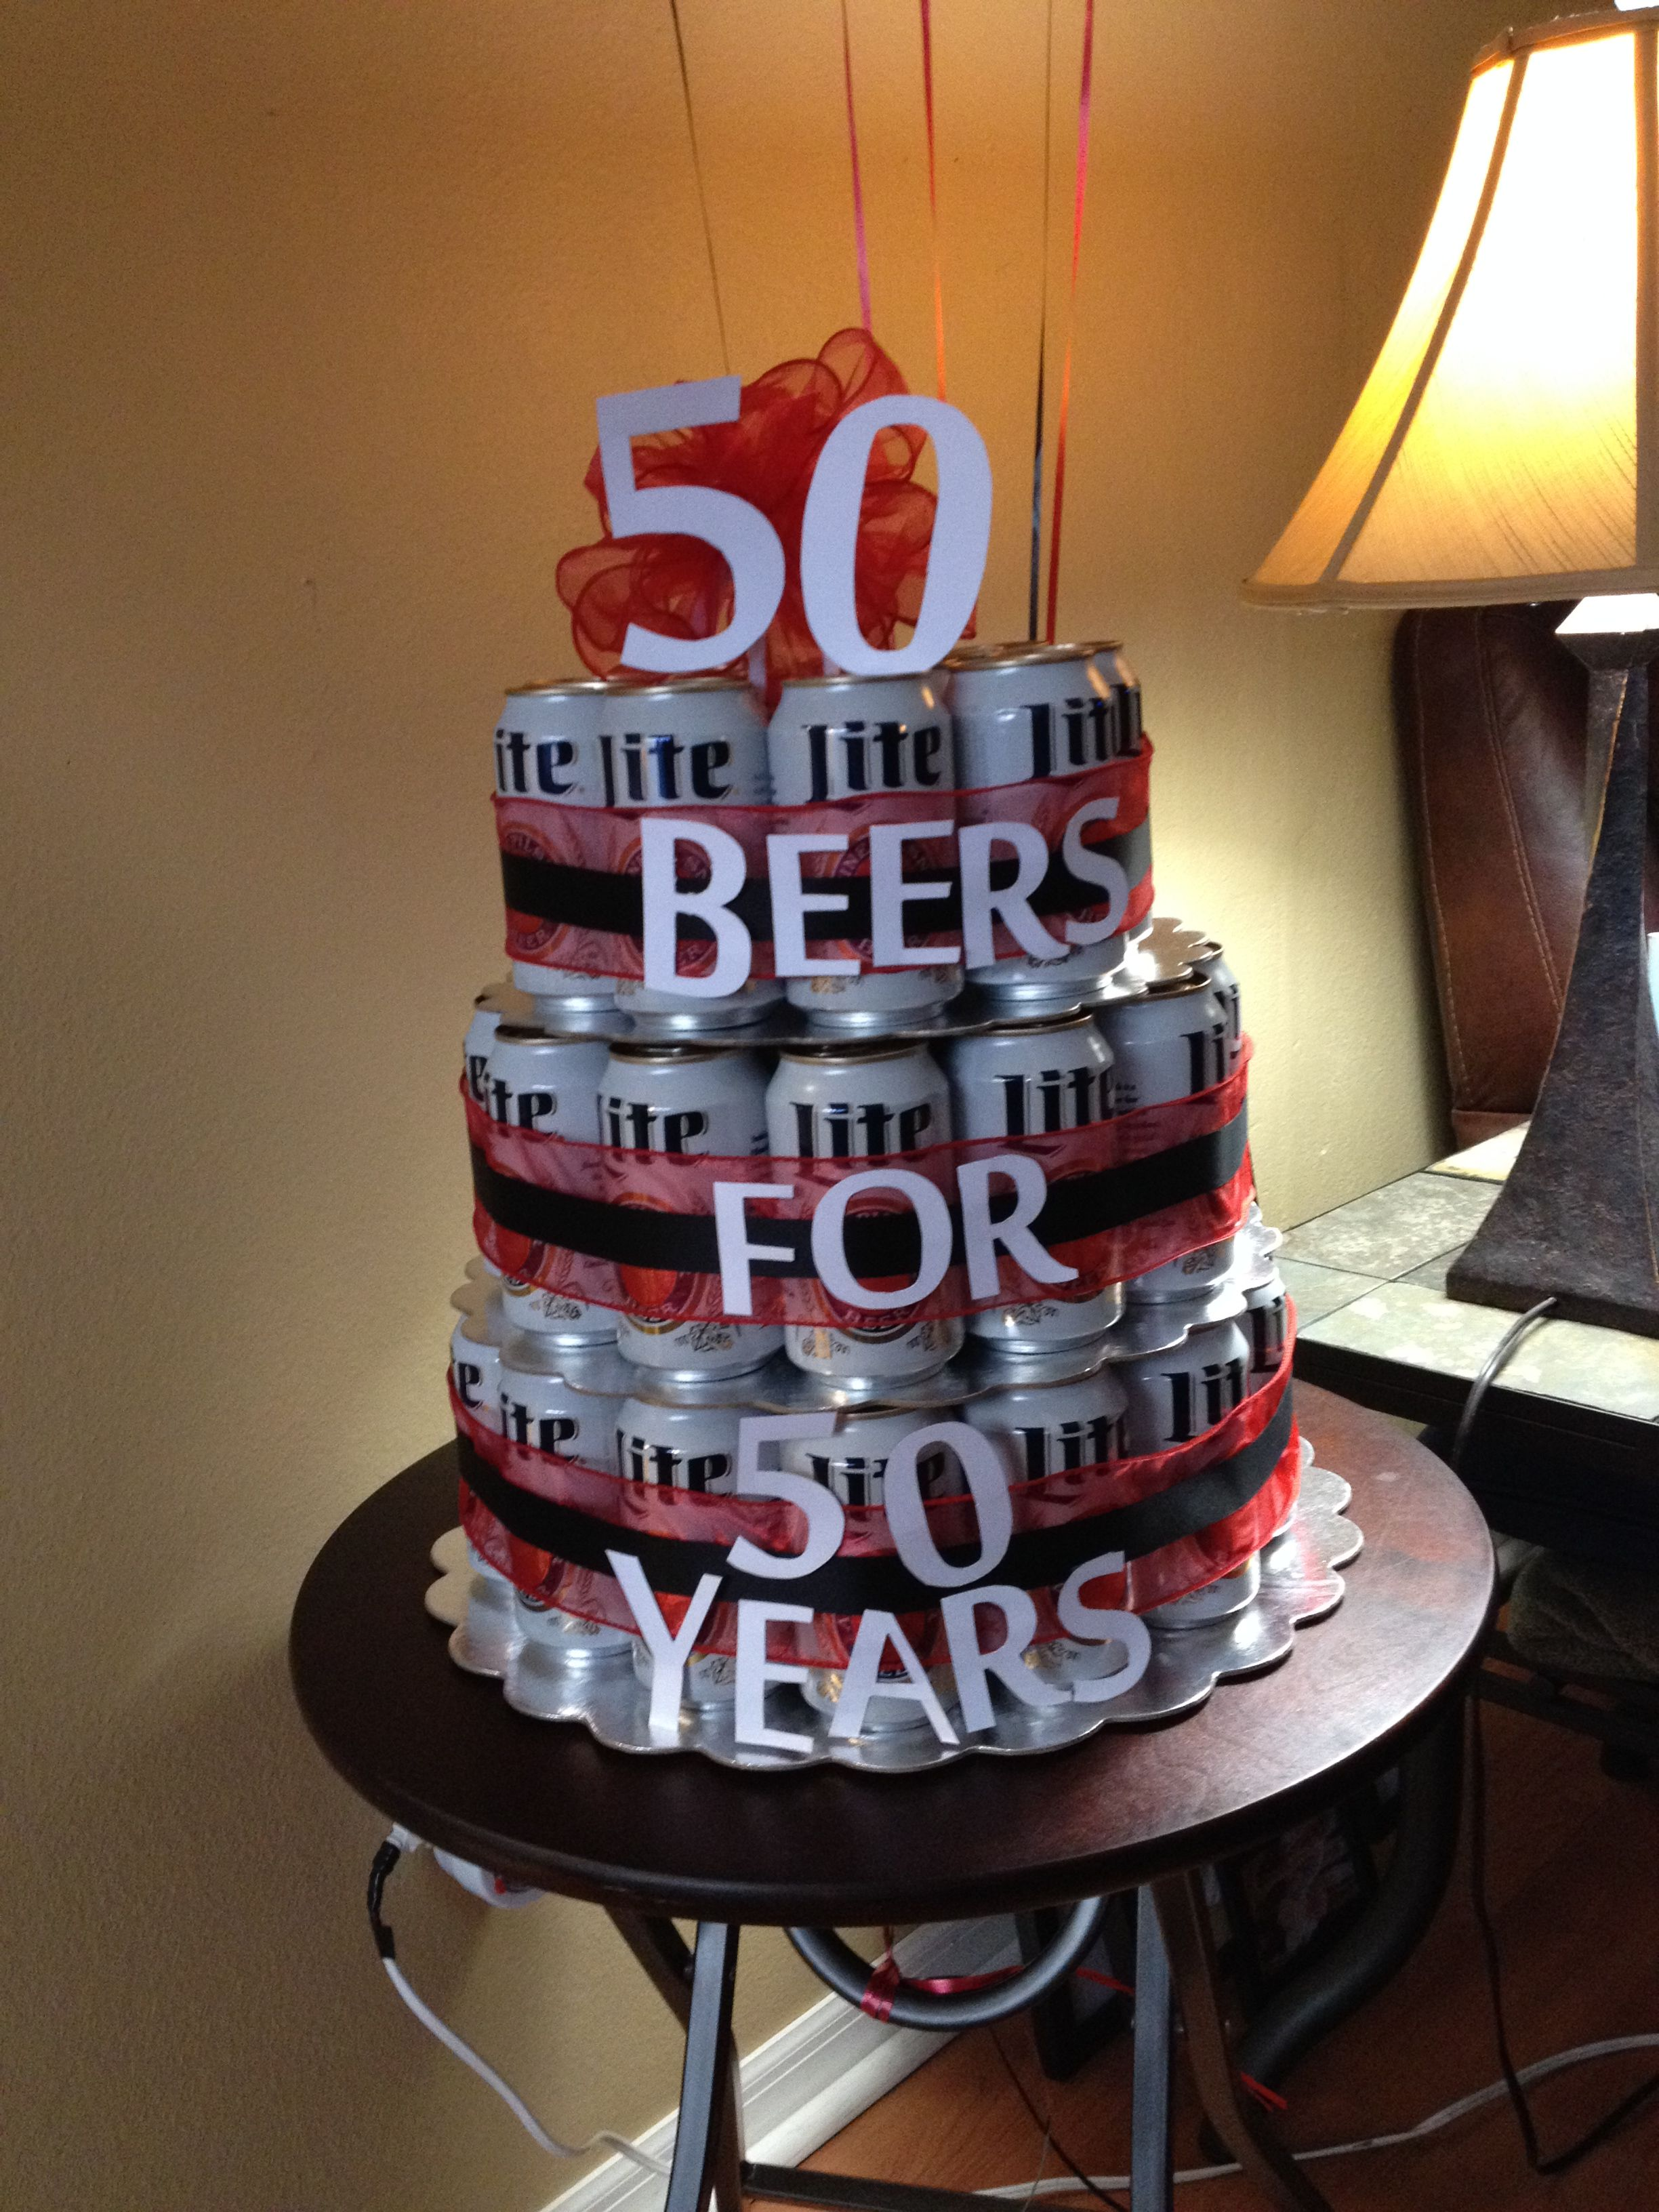 Admirable 50Th Birthday Beer Cake With Images Birthday Beer Cake Beer Personalised Birthday Cards Paralily Jamesorg